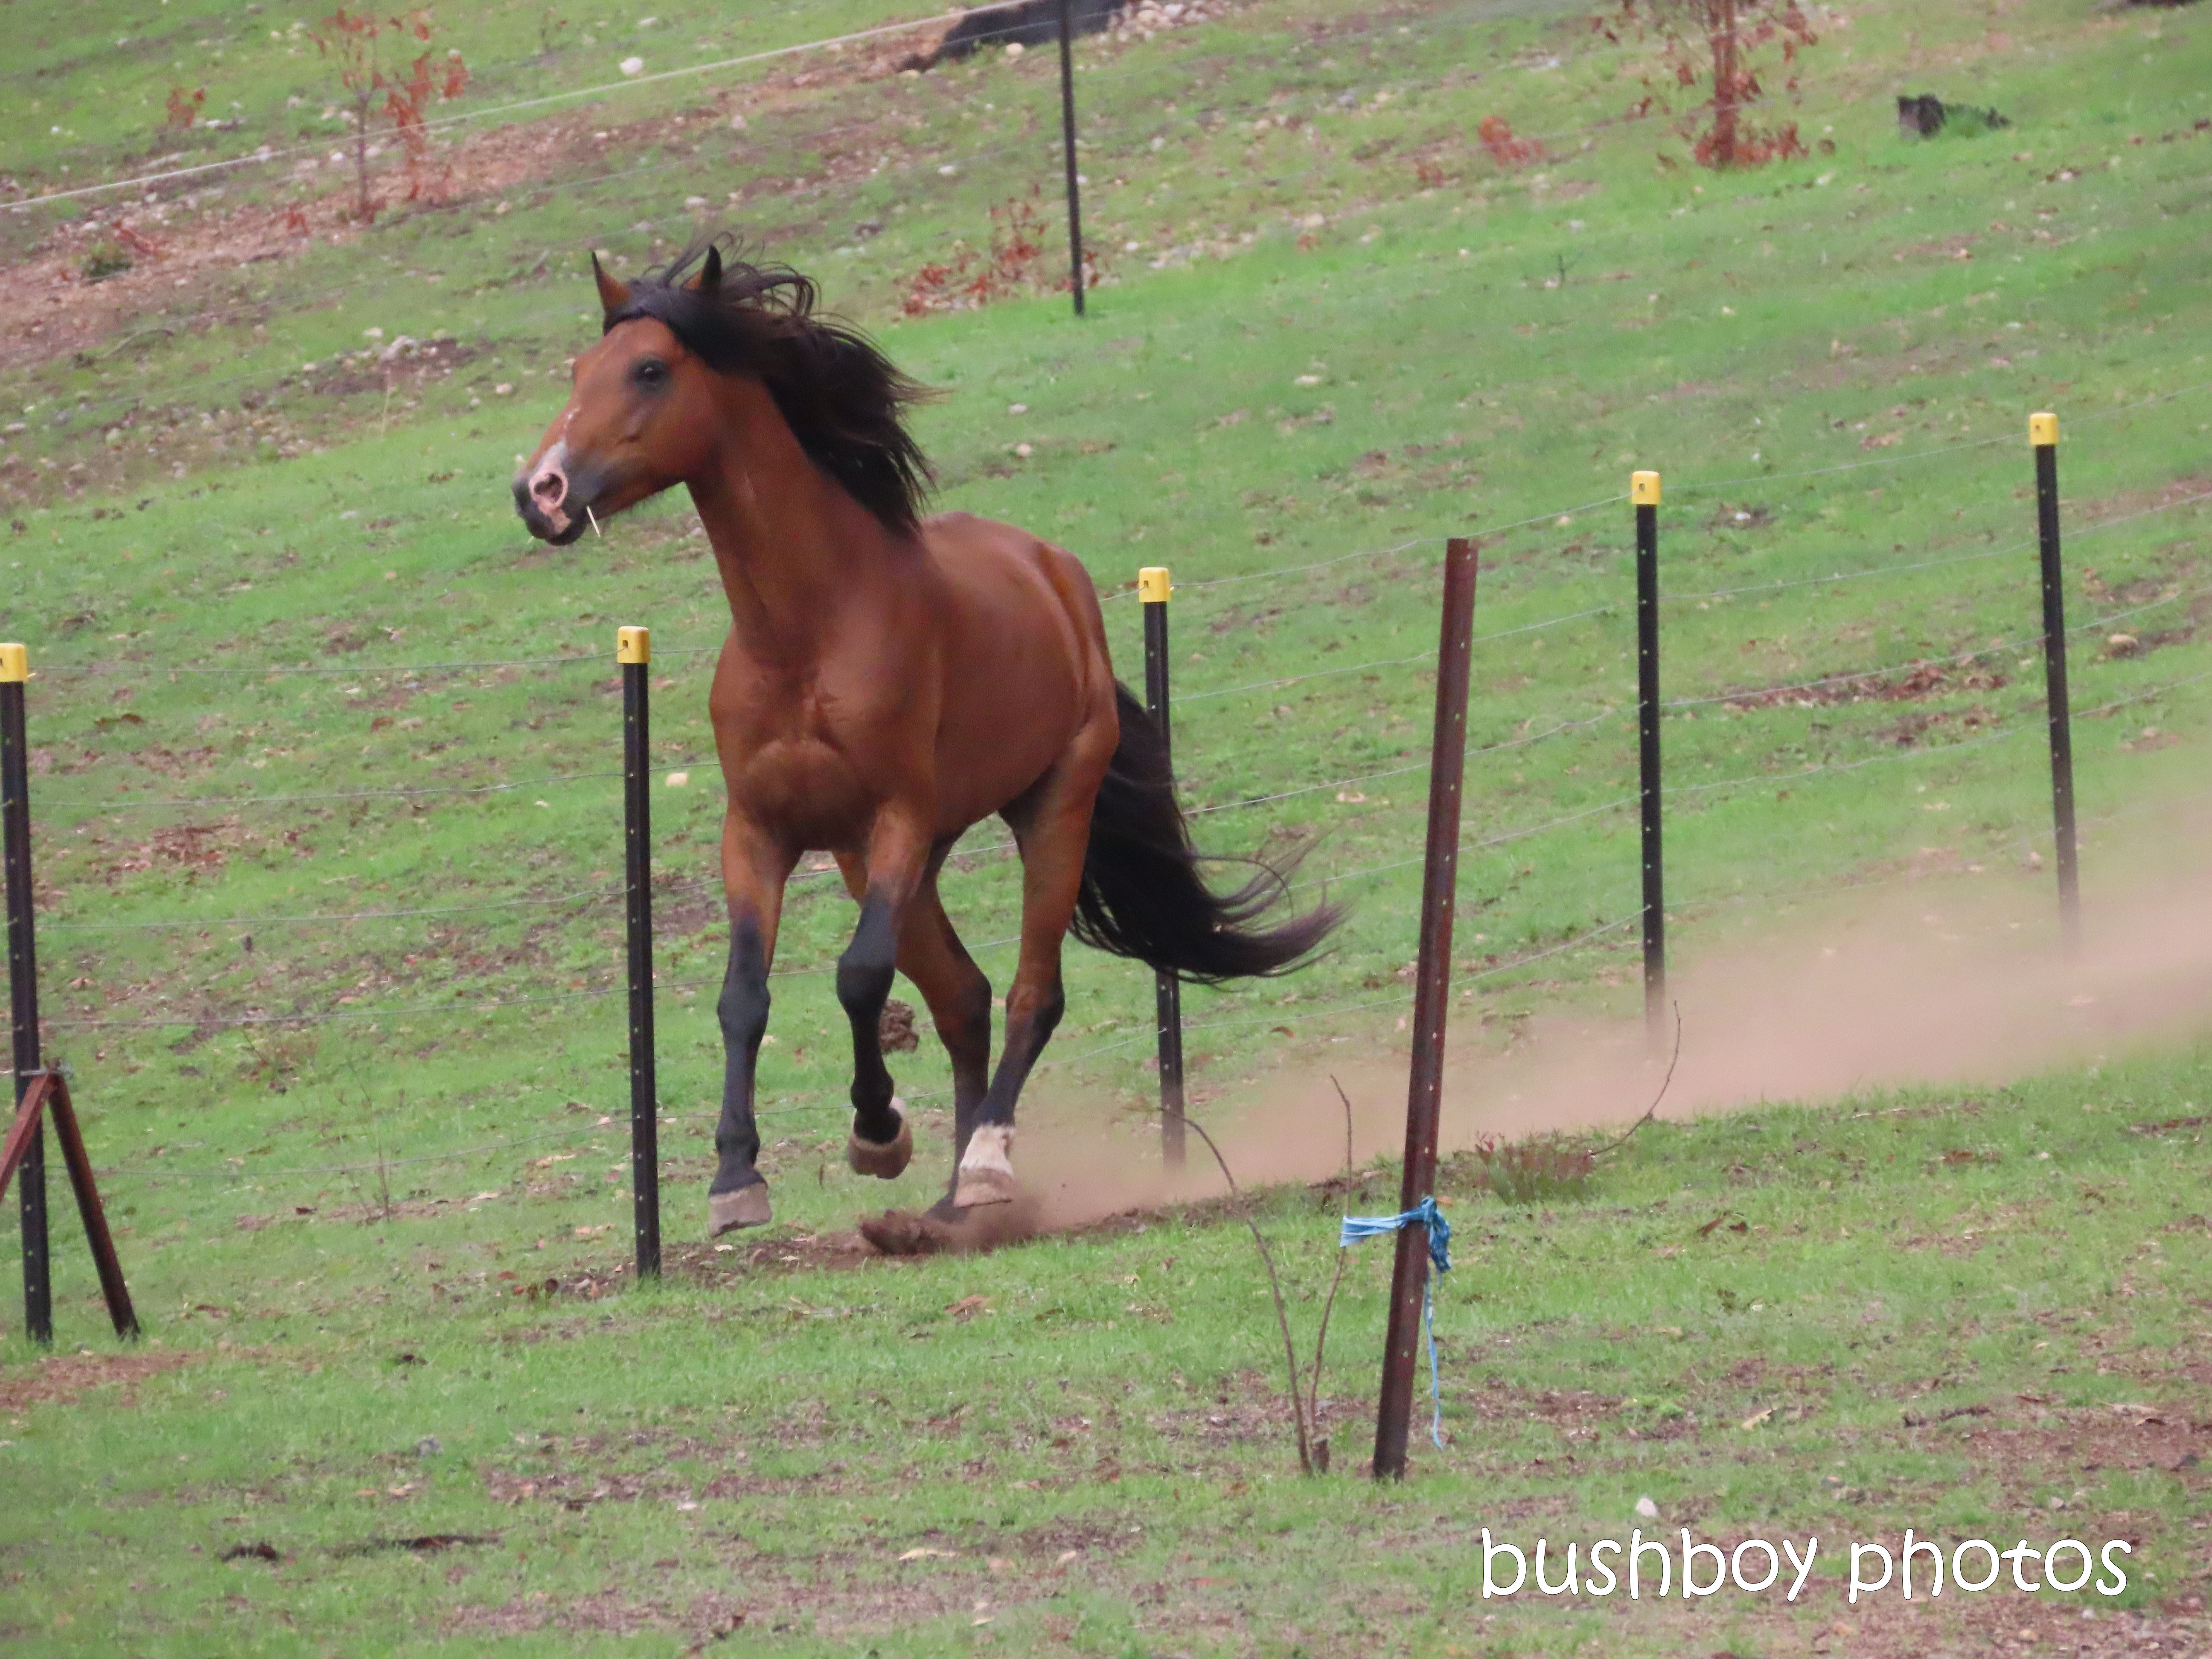 20200112_blog challenge_action_horse_gallop_jackadgery